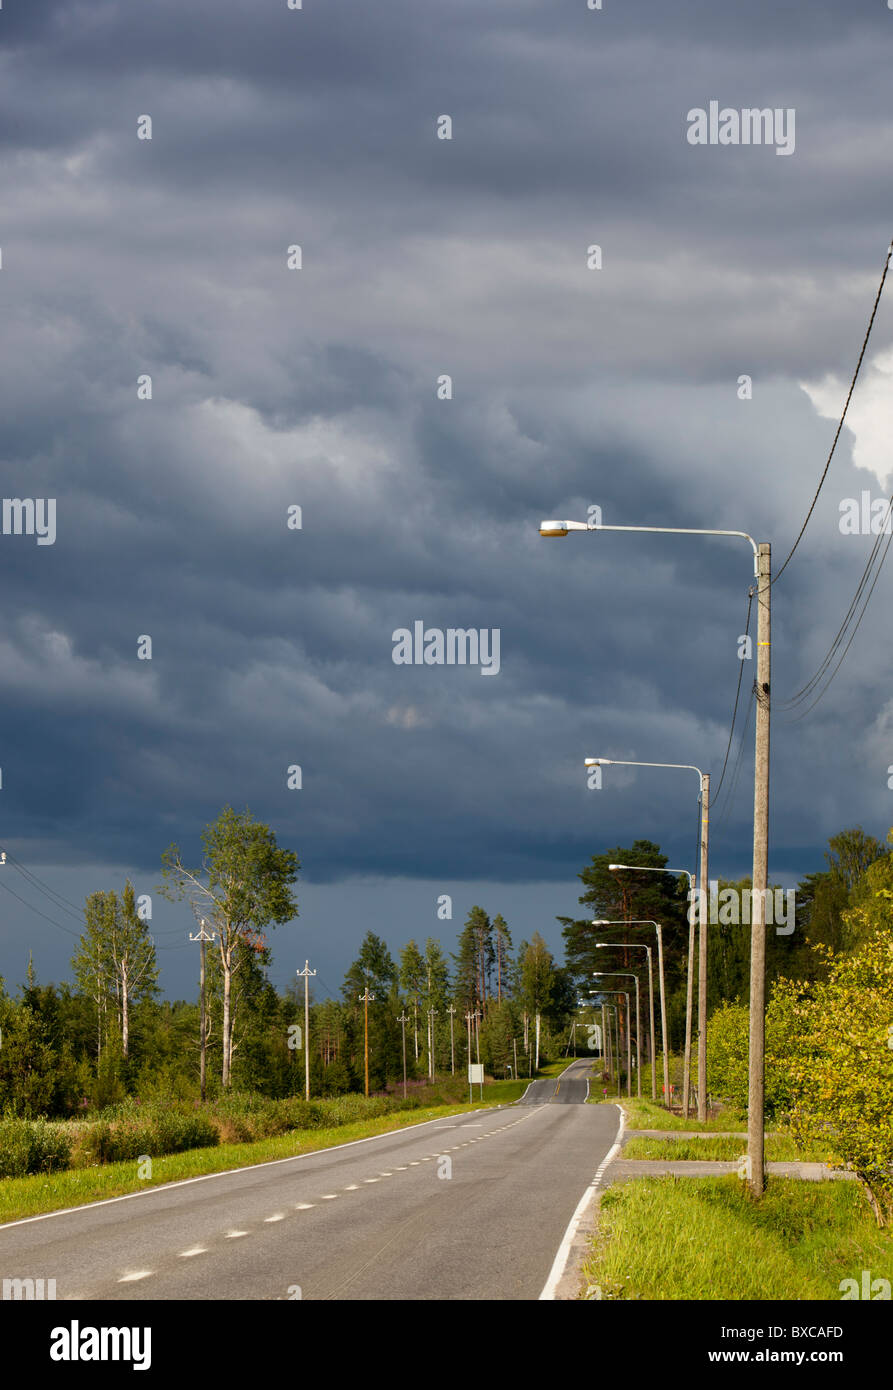 Empty road at countryside and rising thunderstorm clouds , Finland - Stock Image